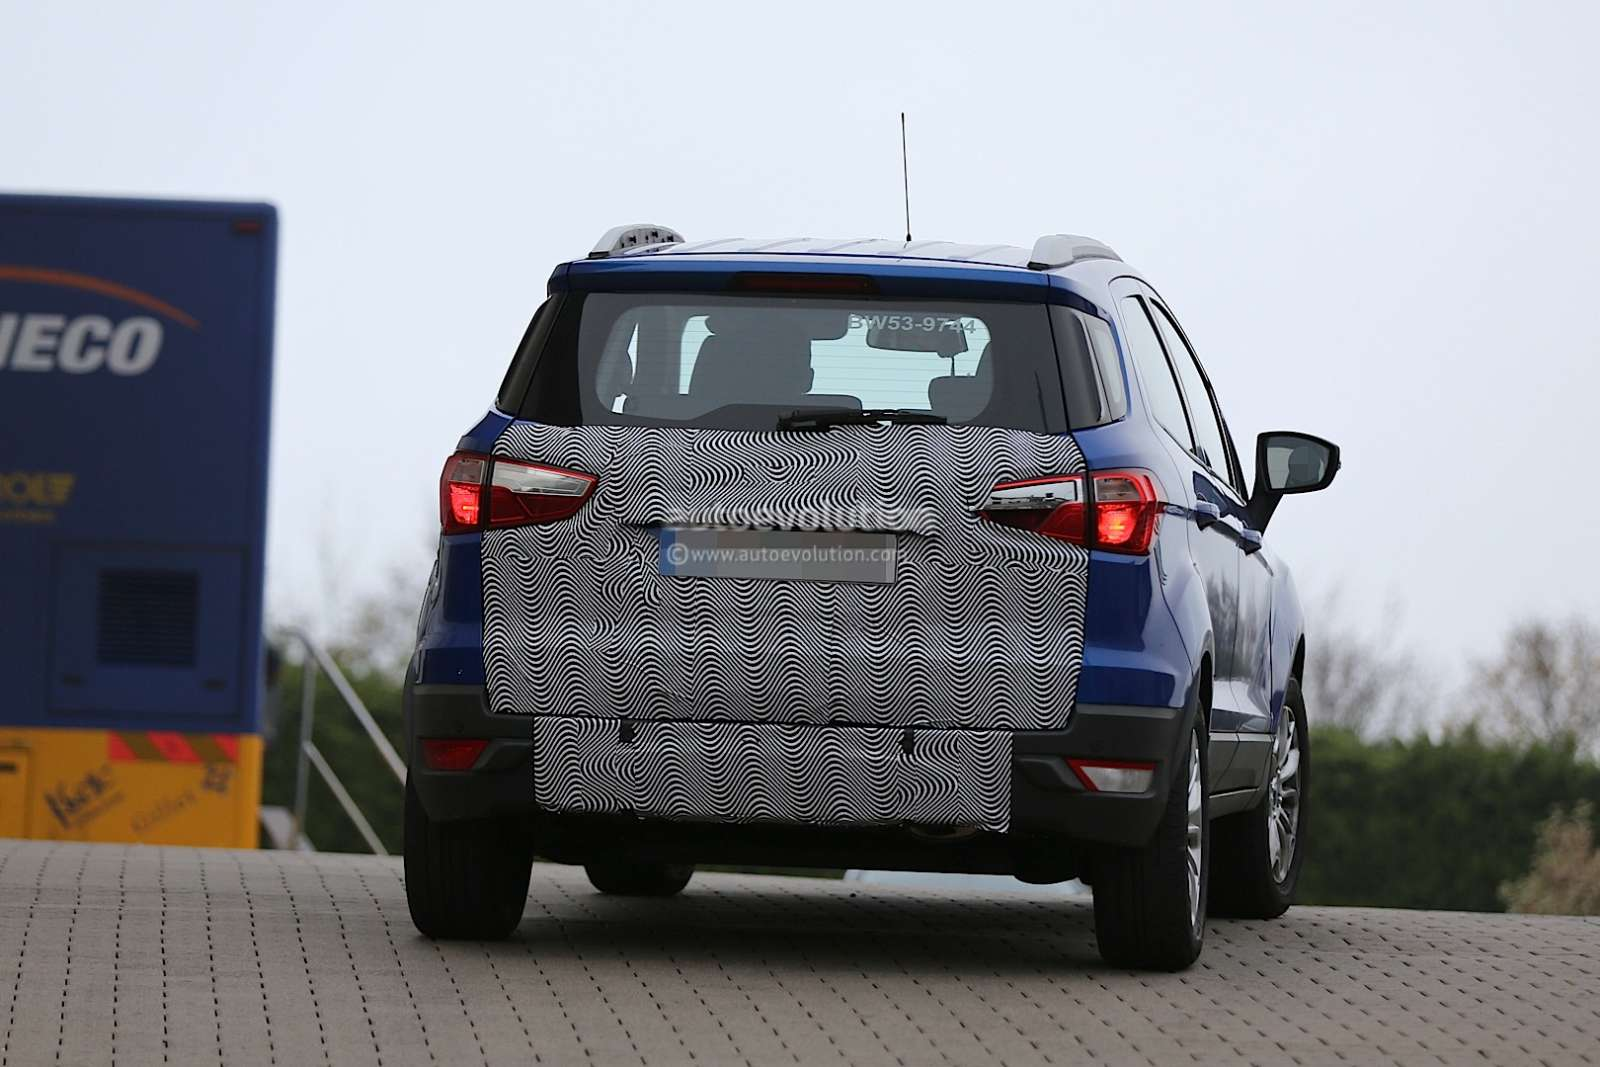 2015 Ford Ecosport face-lift spied: loses rear-mounted spare?